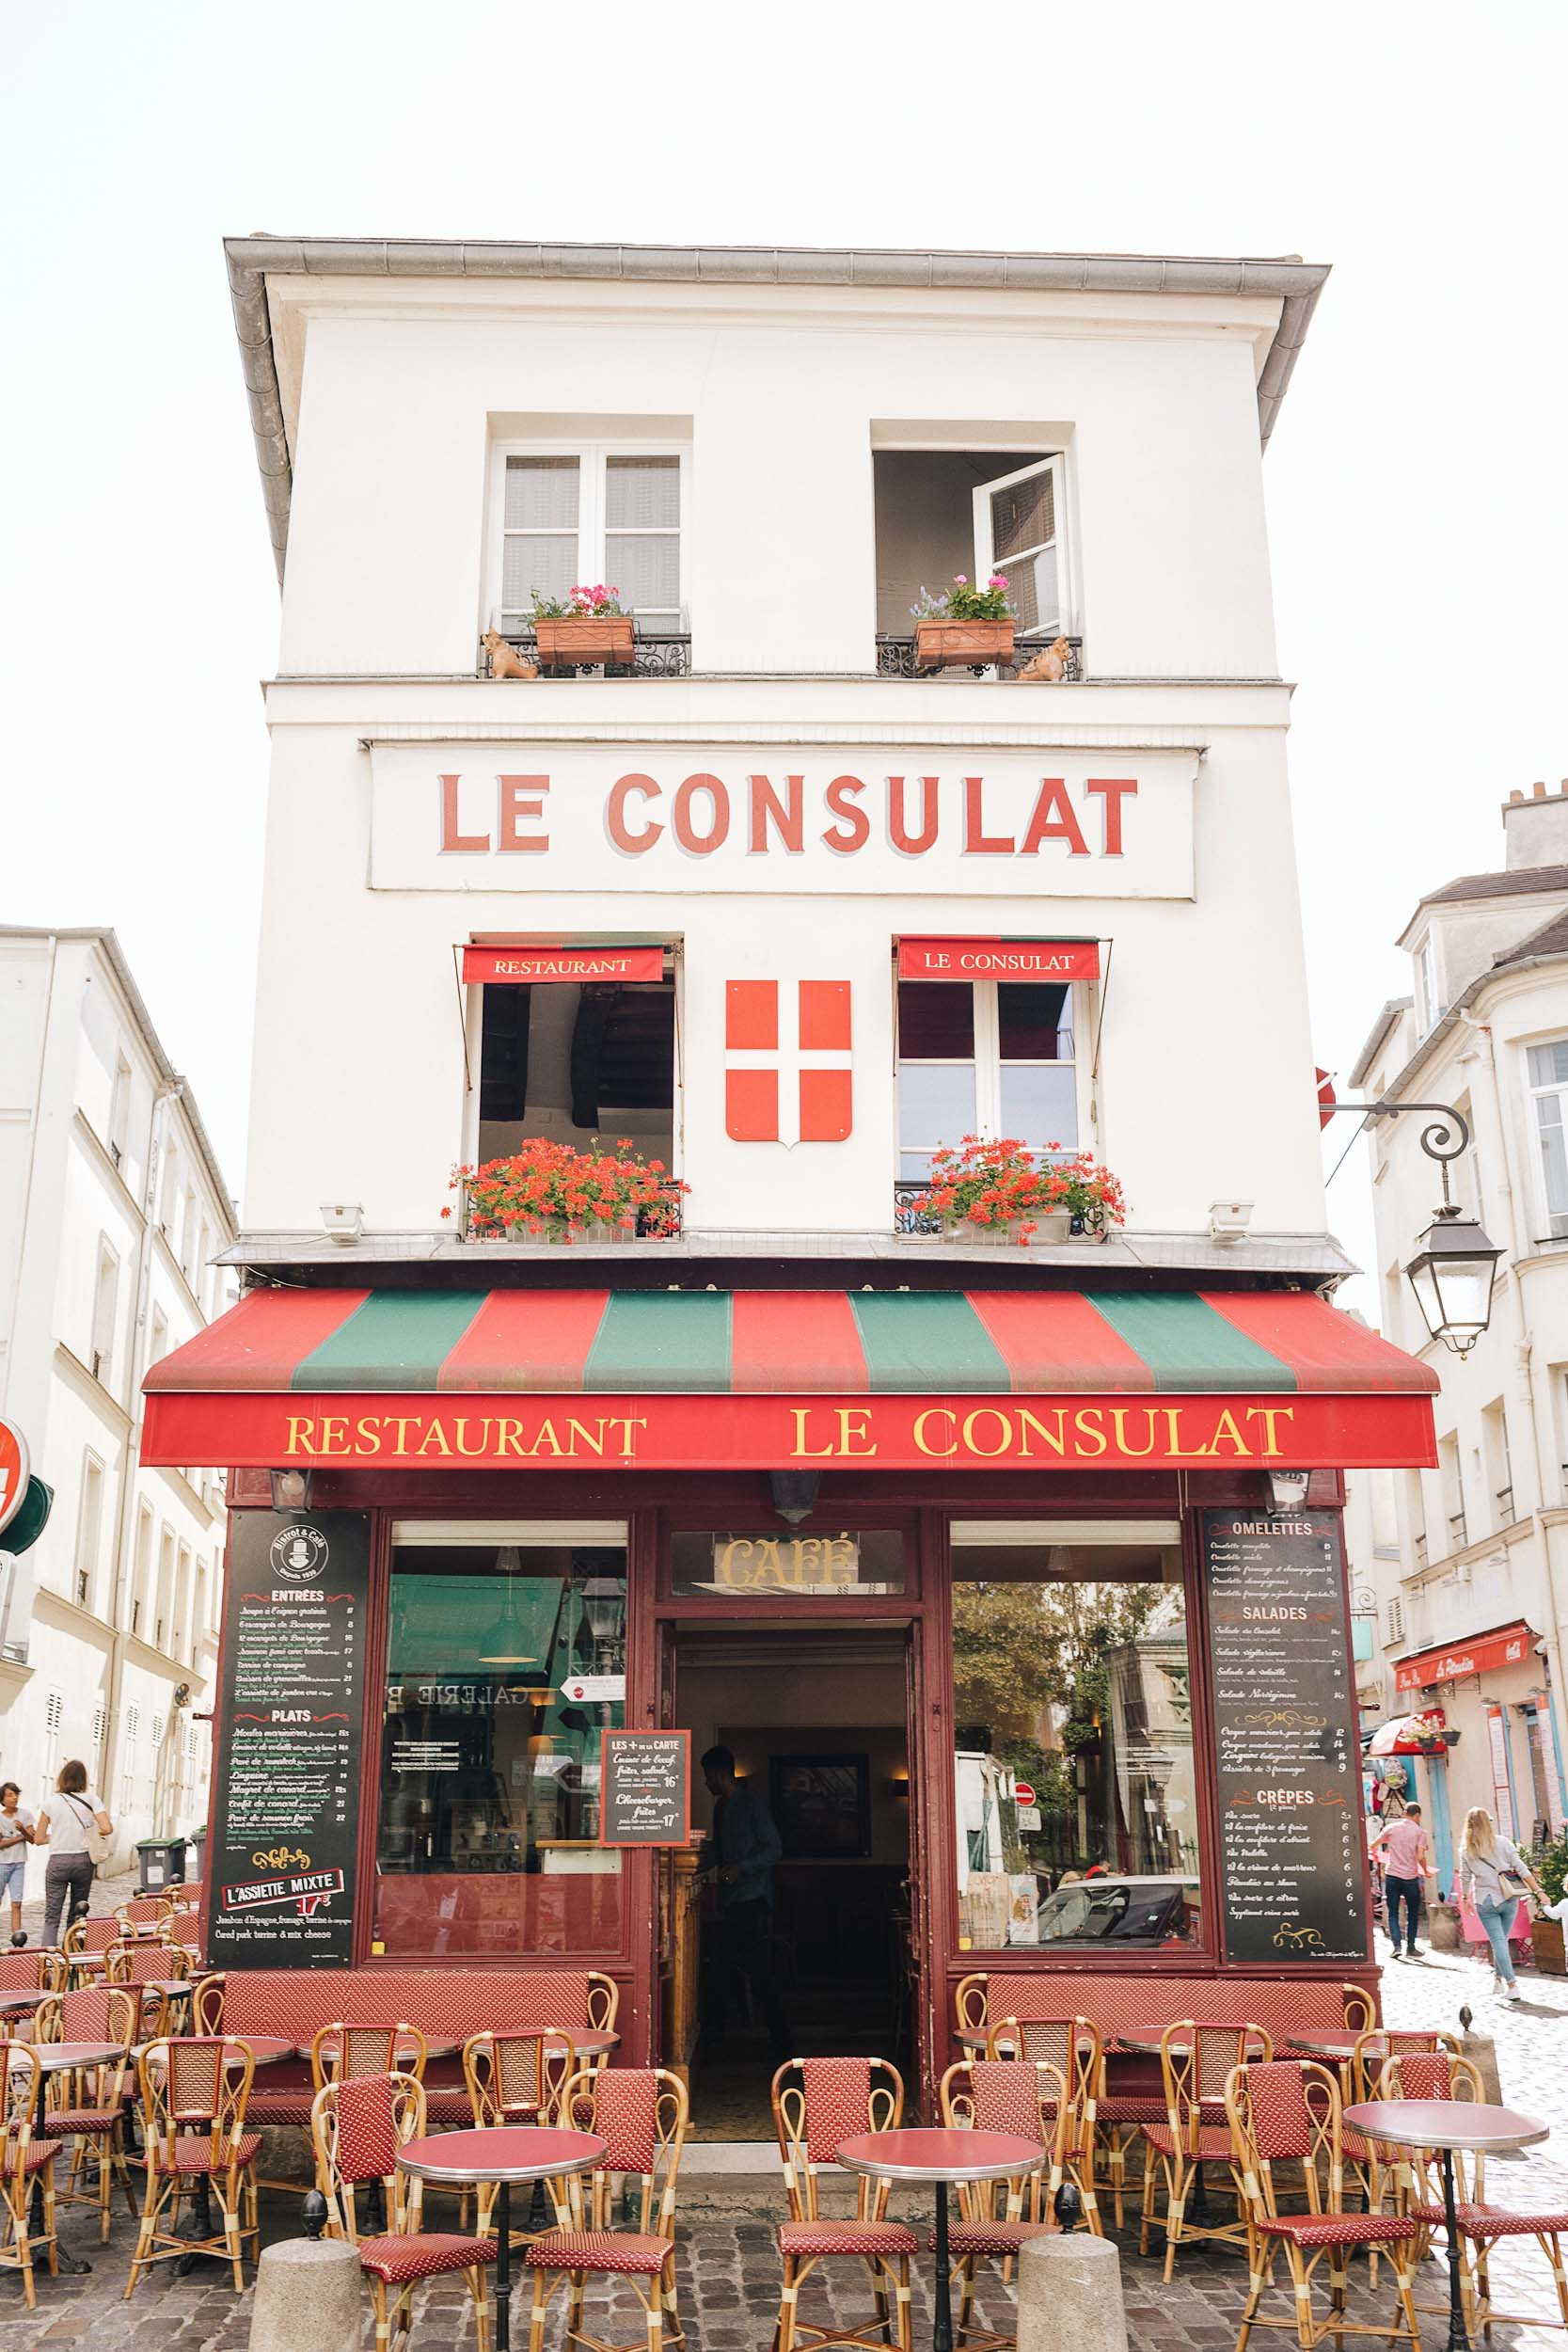 While in Paris for a week, don't miss Montmartre